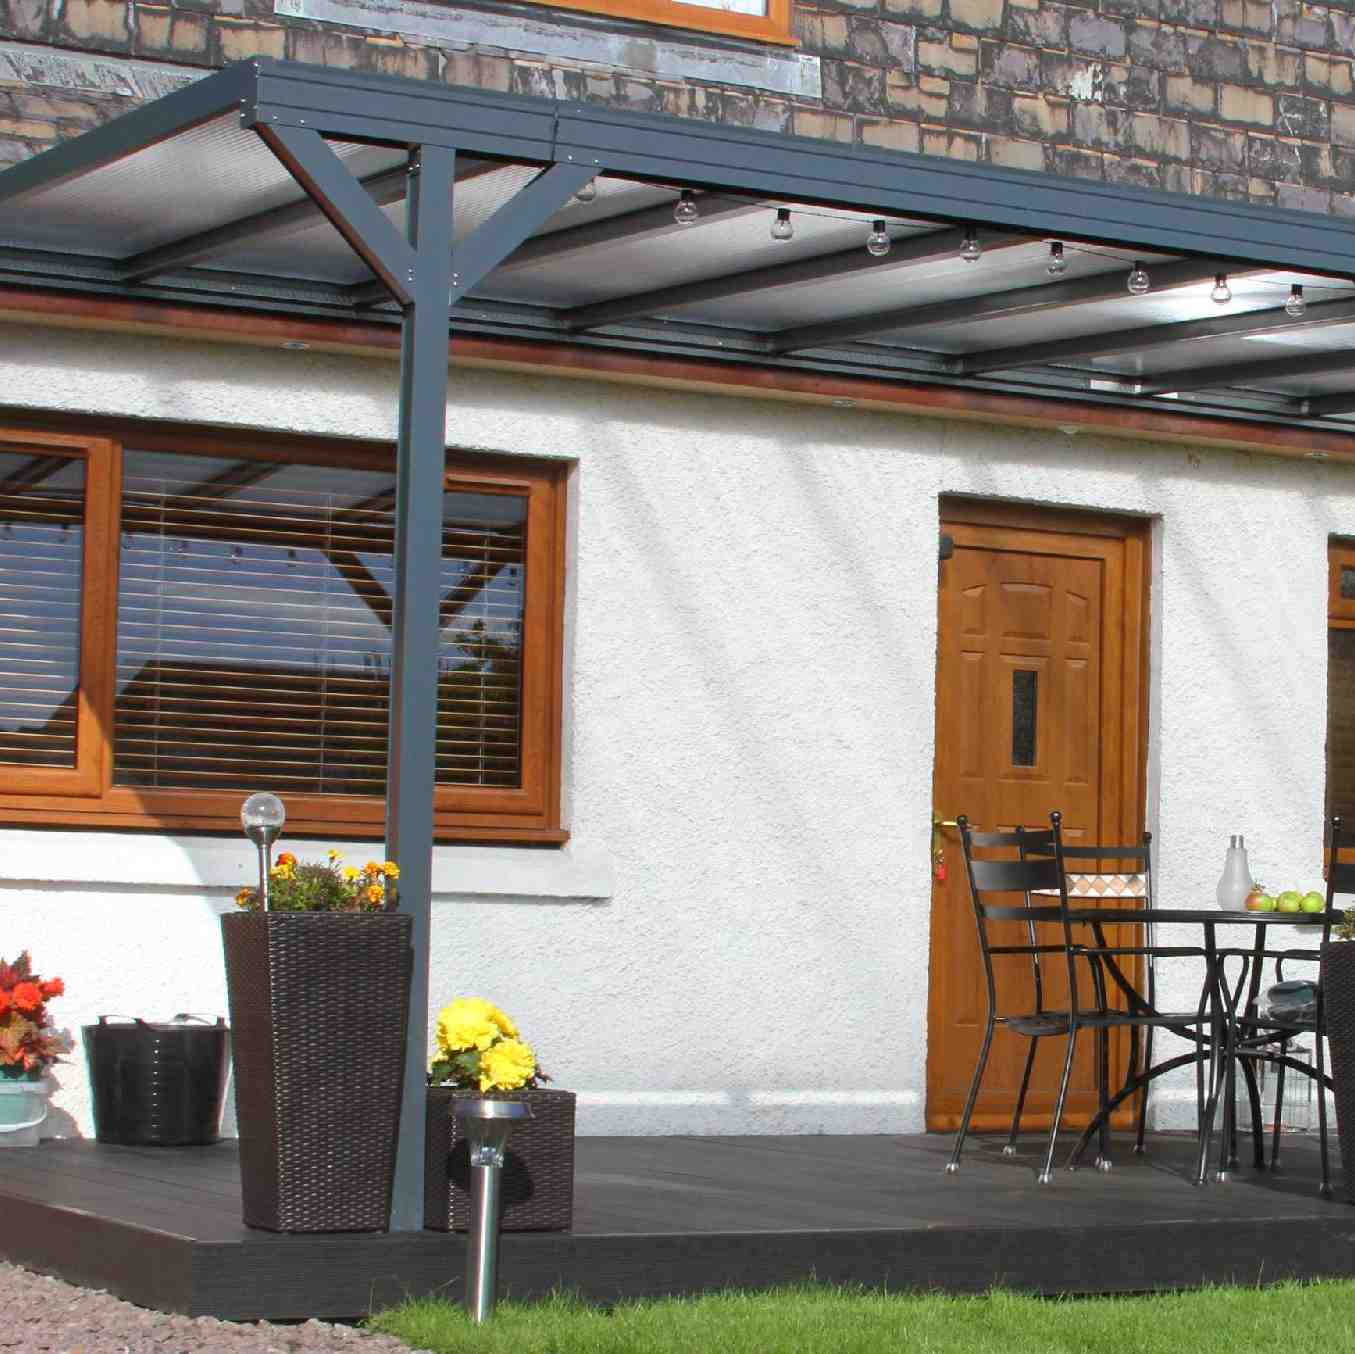 Omega Verandah, Anthracite Grey, 6mm Glass Clear Plate Polycarbonate Glazing - 7.7m (W) x 2.5m (P), (4) Supporting Posts